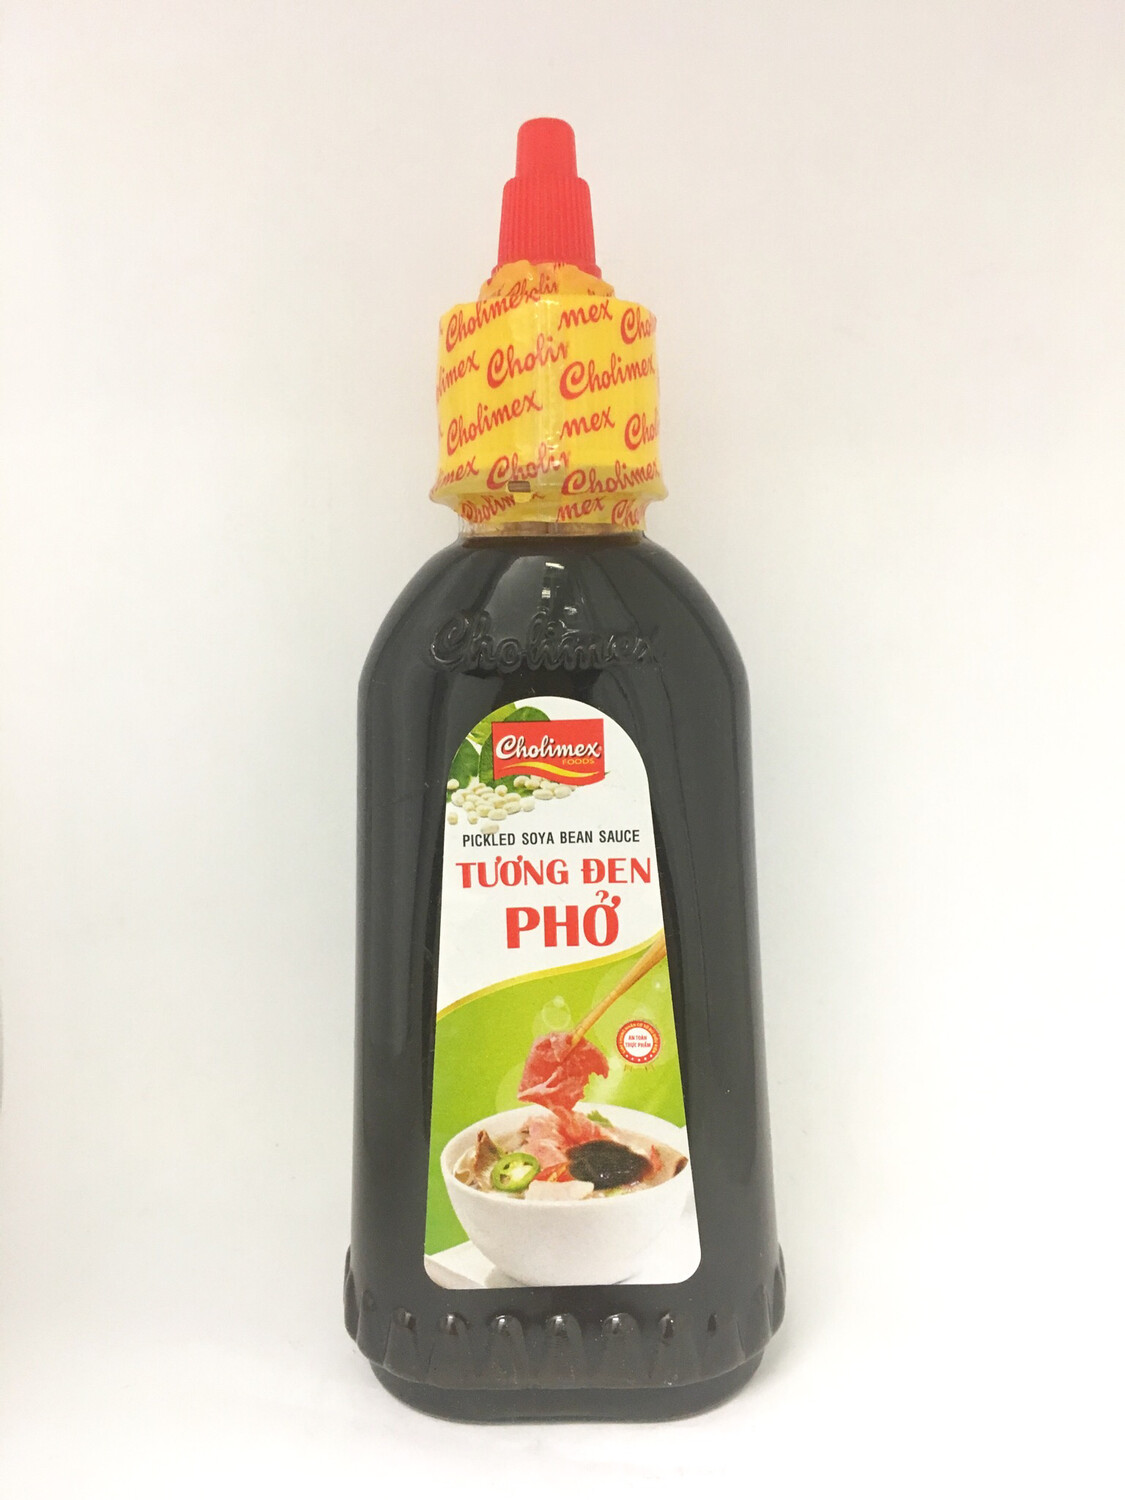 """CHOLIMEX PICKED SOYA BEAN SAUCE FOR """"PHO"""" 36X230G"""